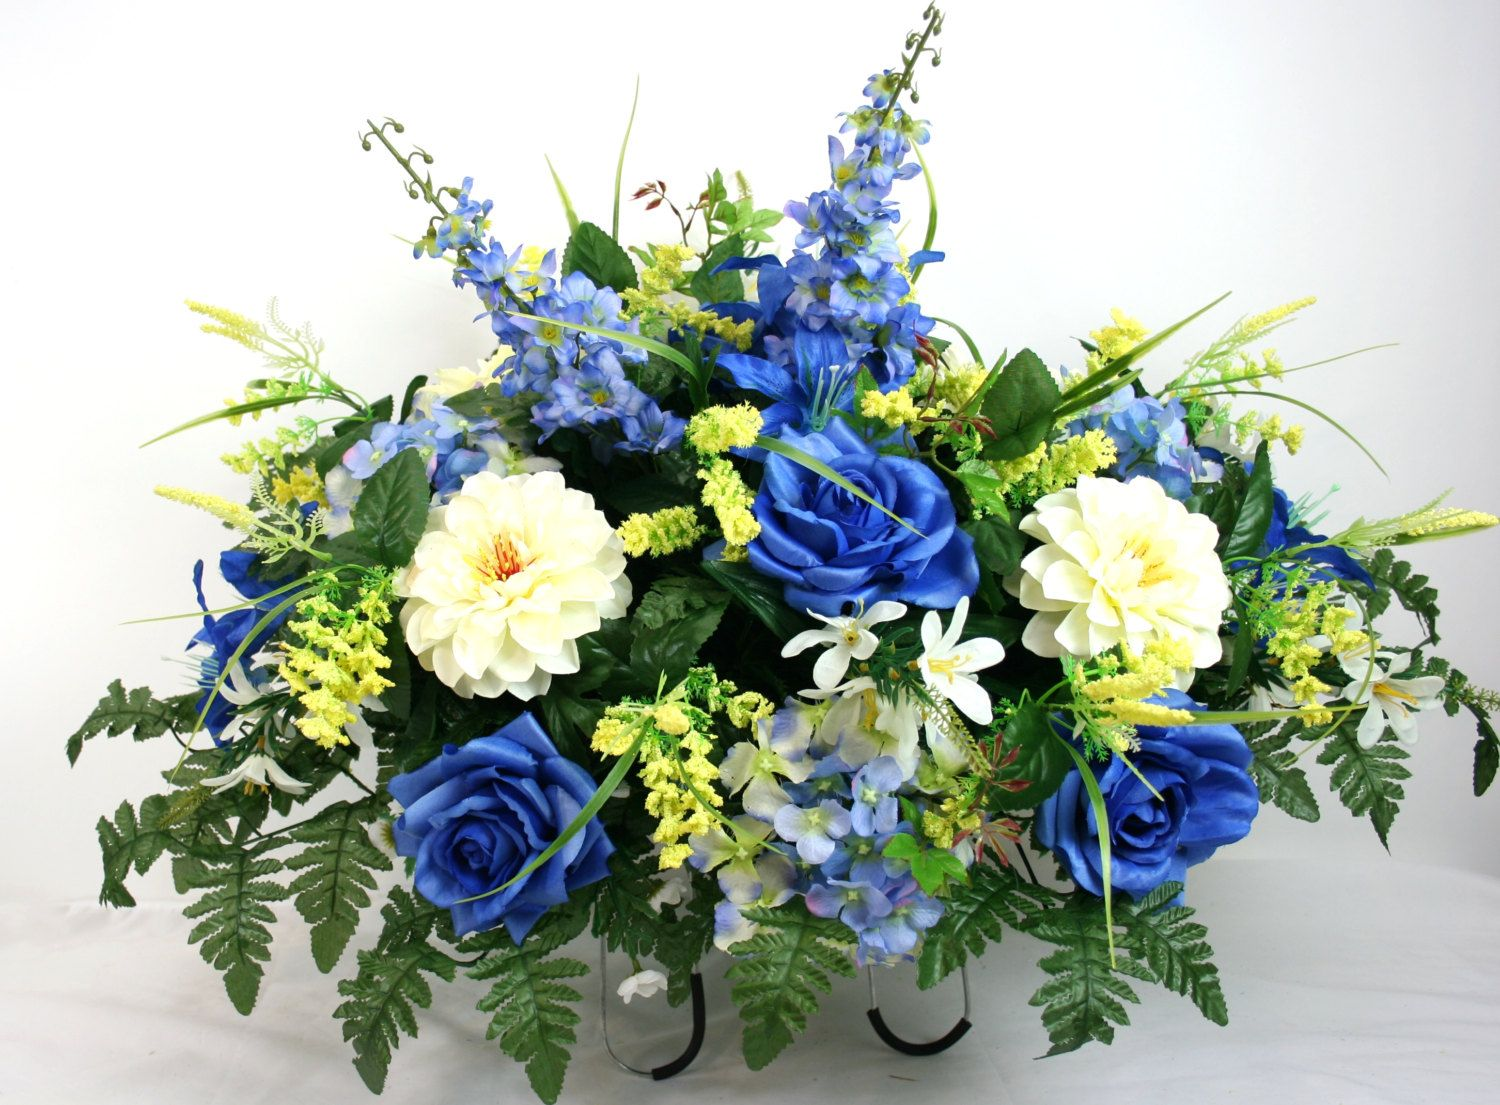 Xl mothers day blue roses silk flower cemetery tombstone saddle by xl mothers day blue roses silk flower cemetery tombstone saddle by crazyboutdeco on etsy mightylinksfo Choice Image